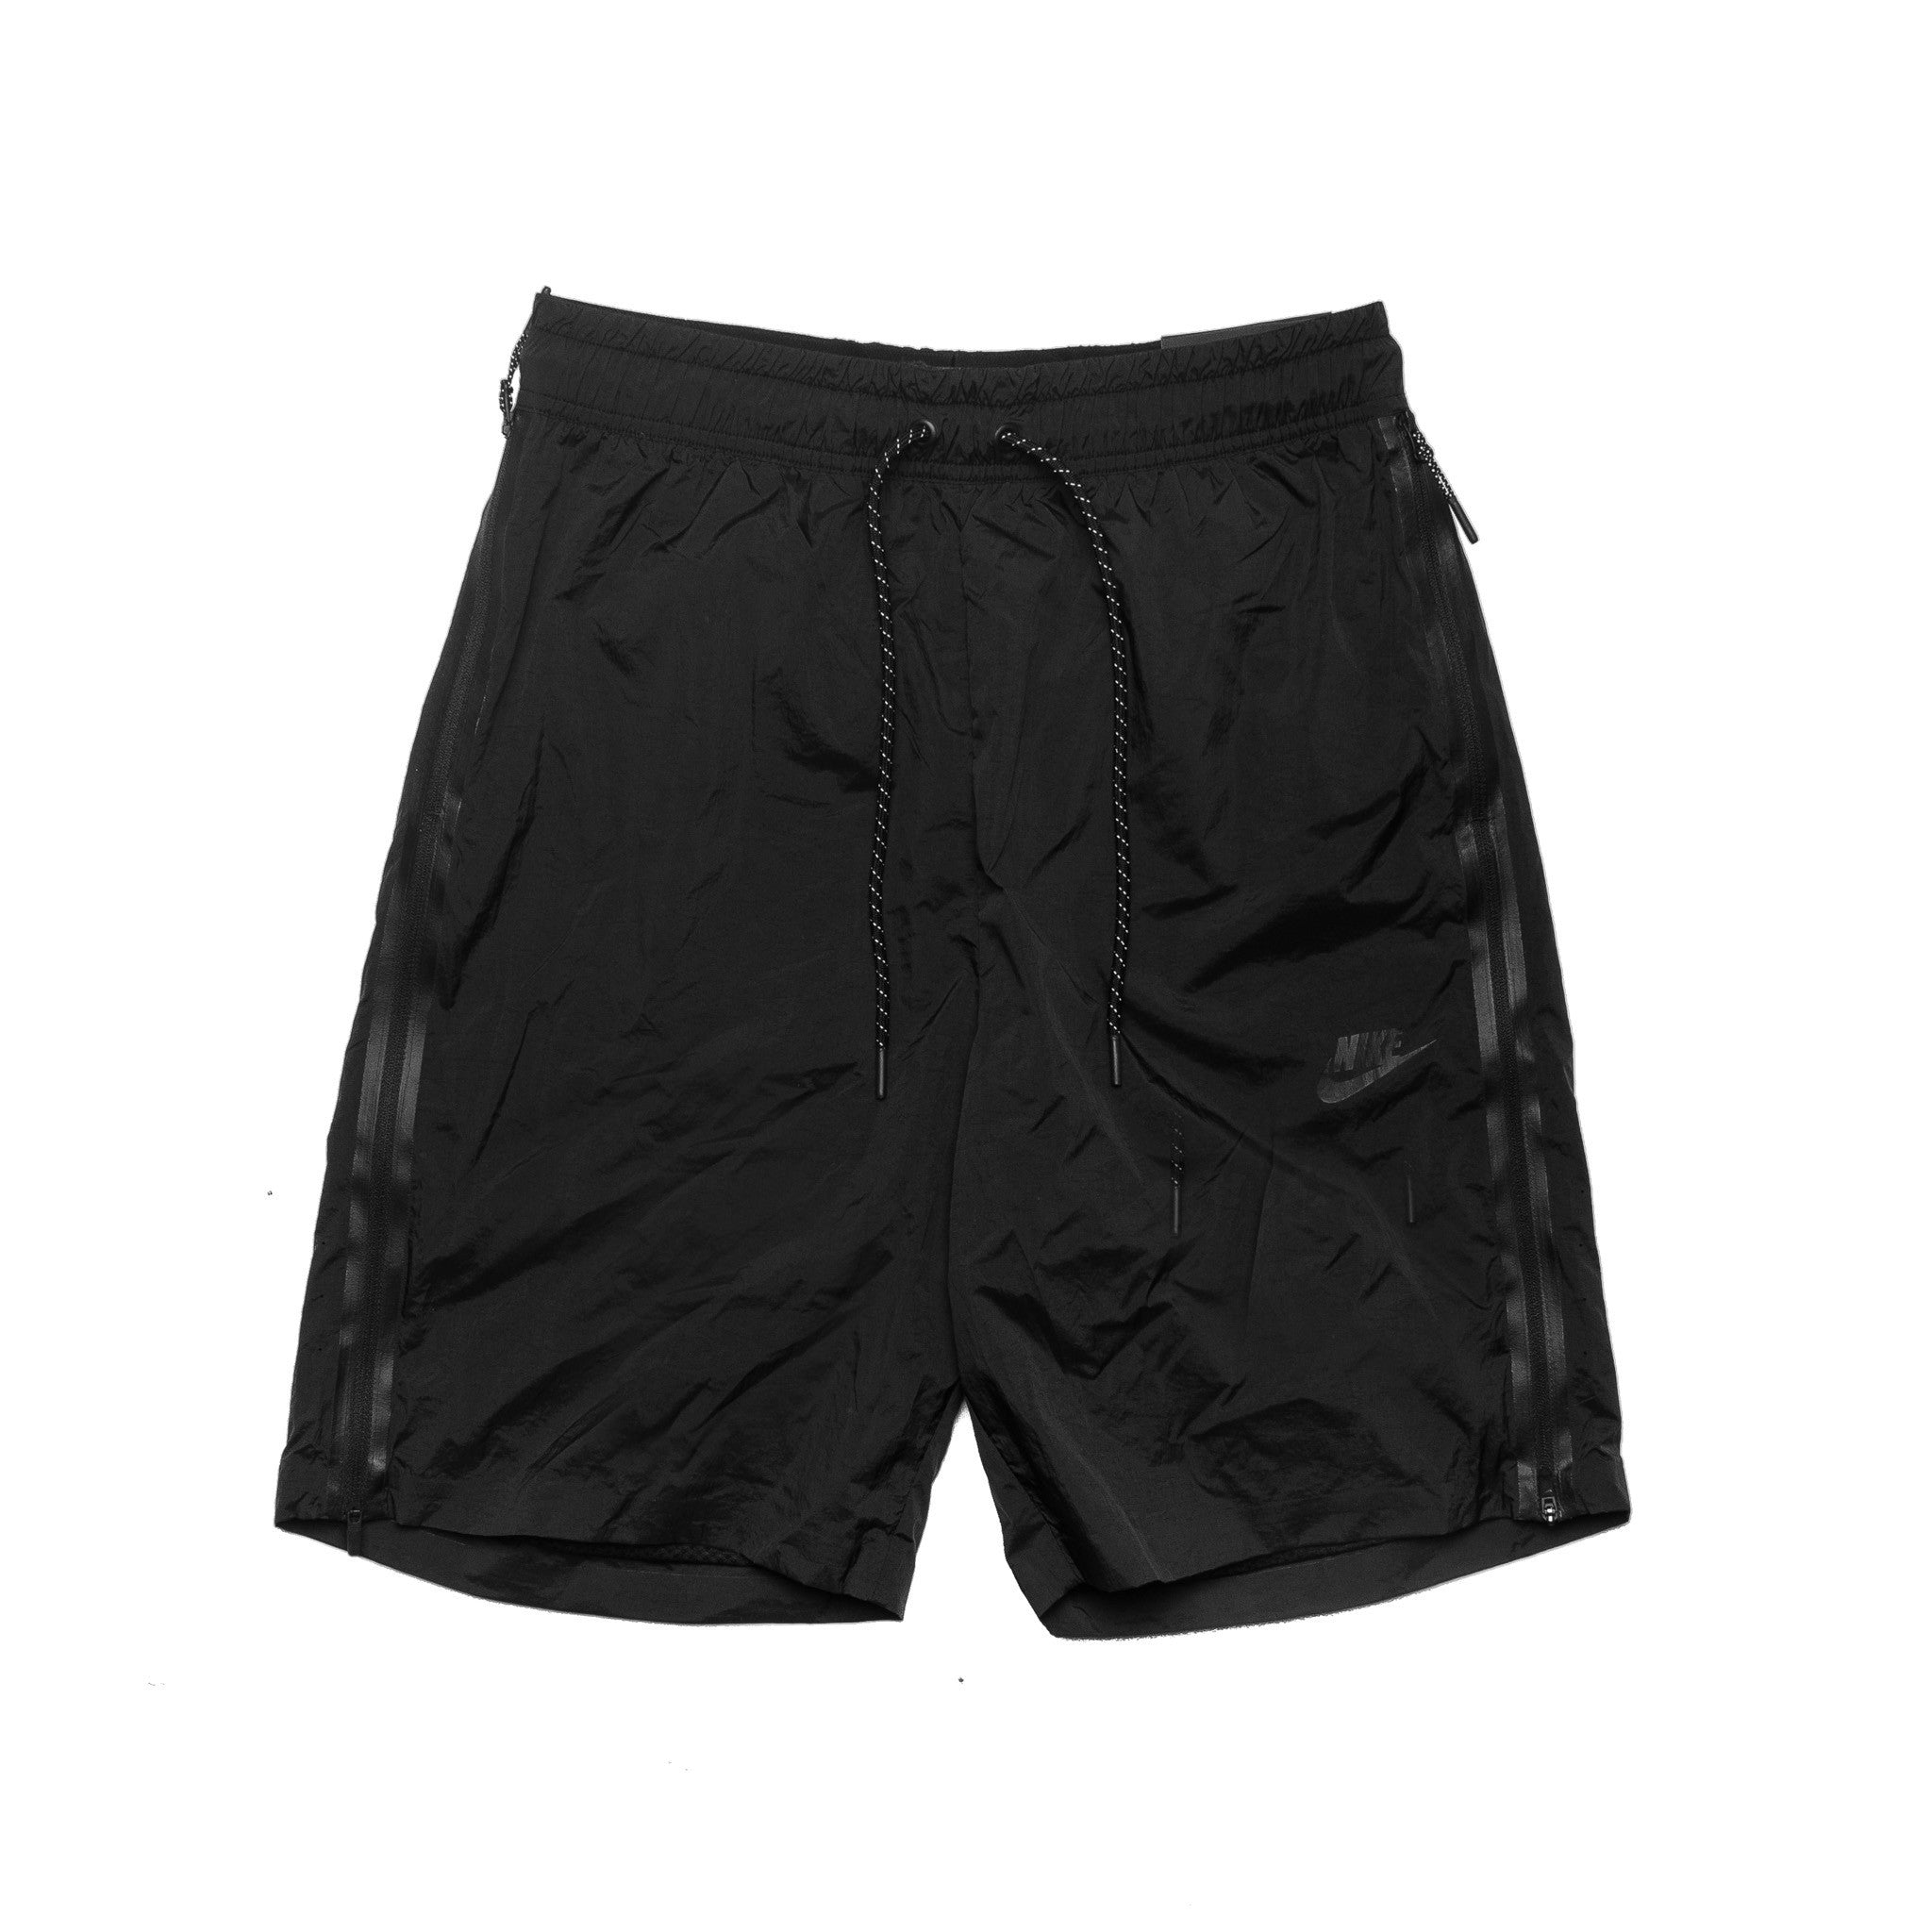 Hypermesh Short 834345-010 Black